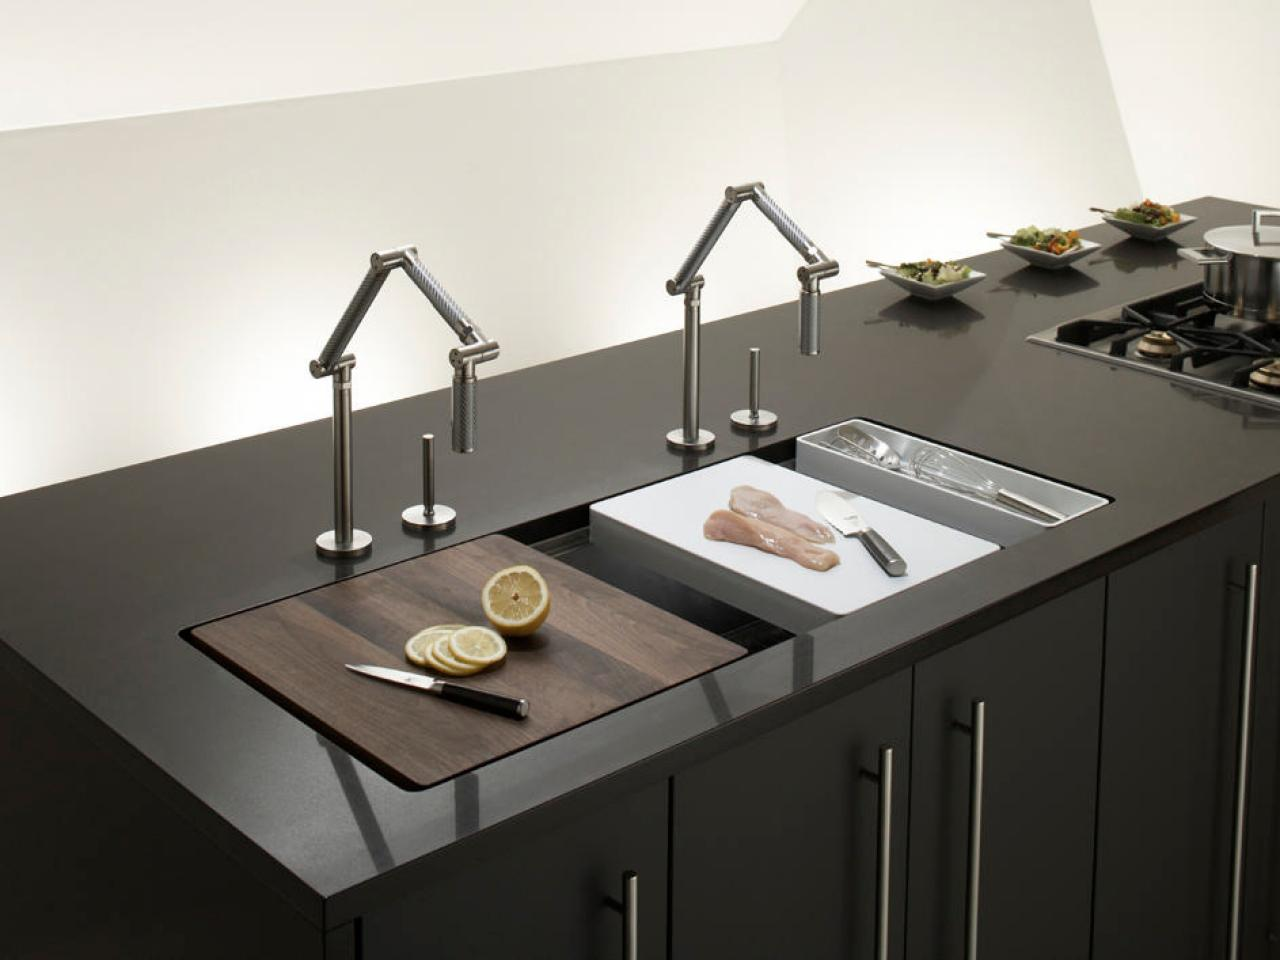 Kitchensinks : Kitchen Sink Styles and Trends Kitchen Designs - Choose Kitchen ...